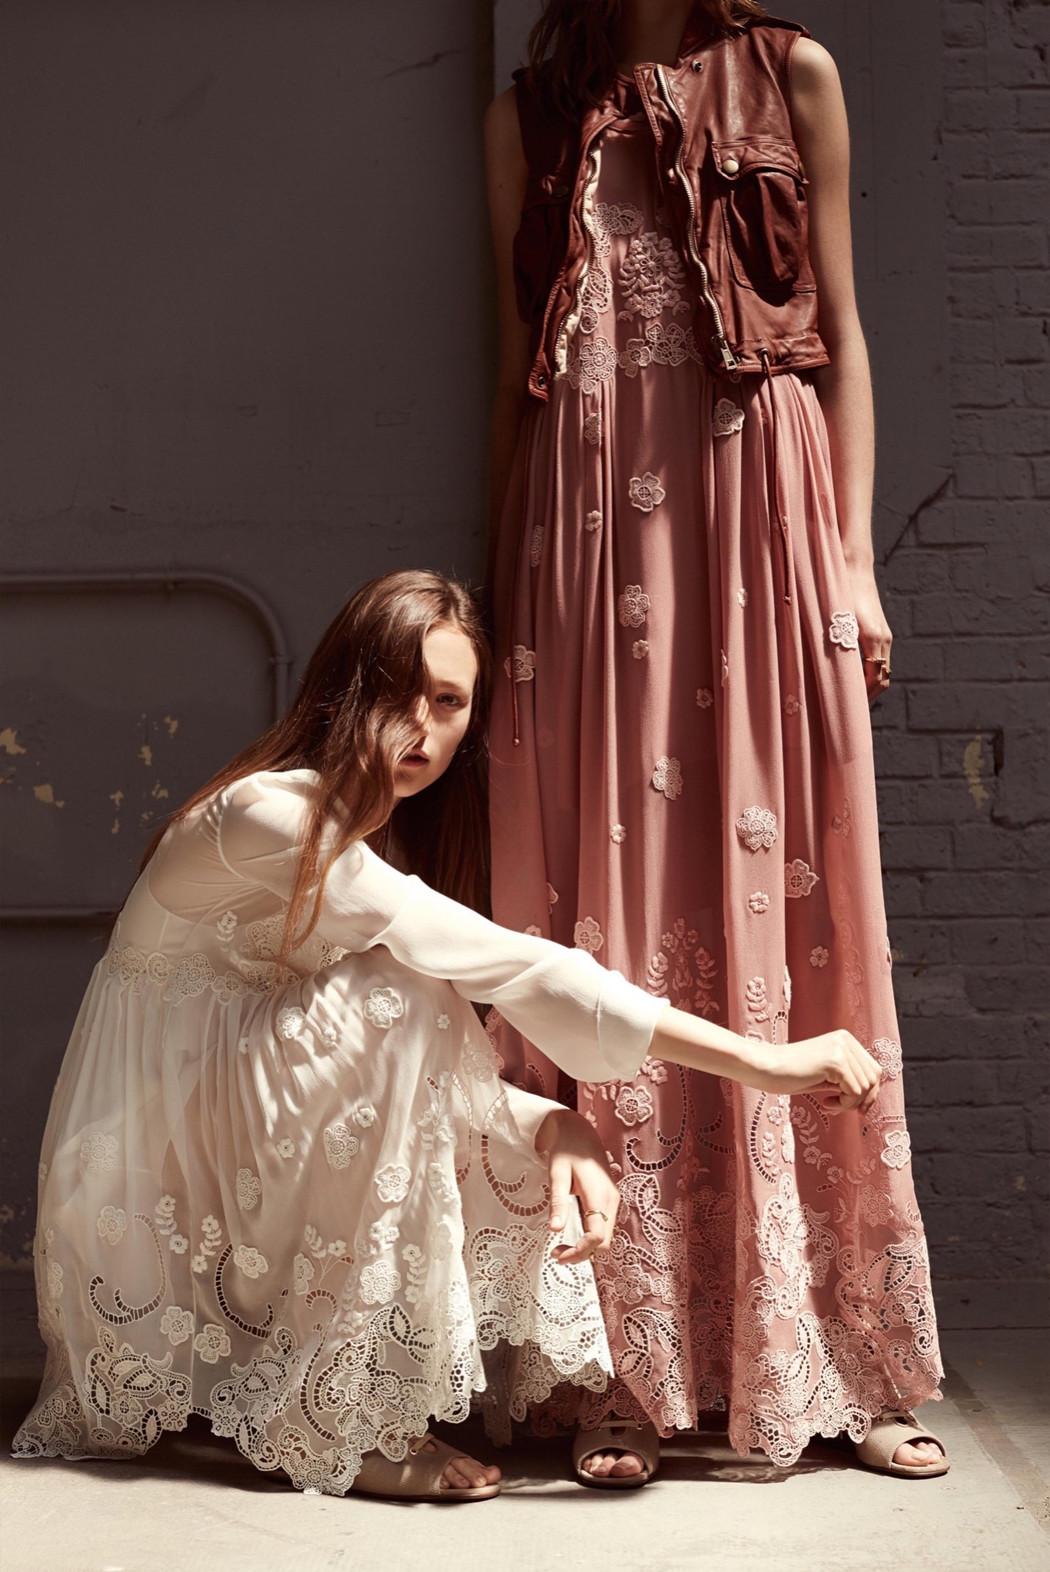 Retromantisch retro romantic fashion blog Chloé Resort 2016 collection dresses lace sheer floral